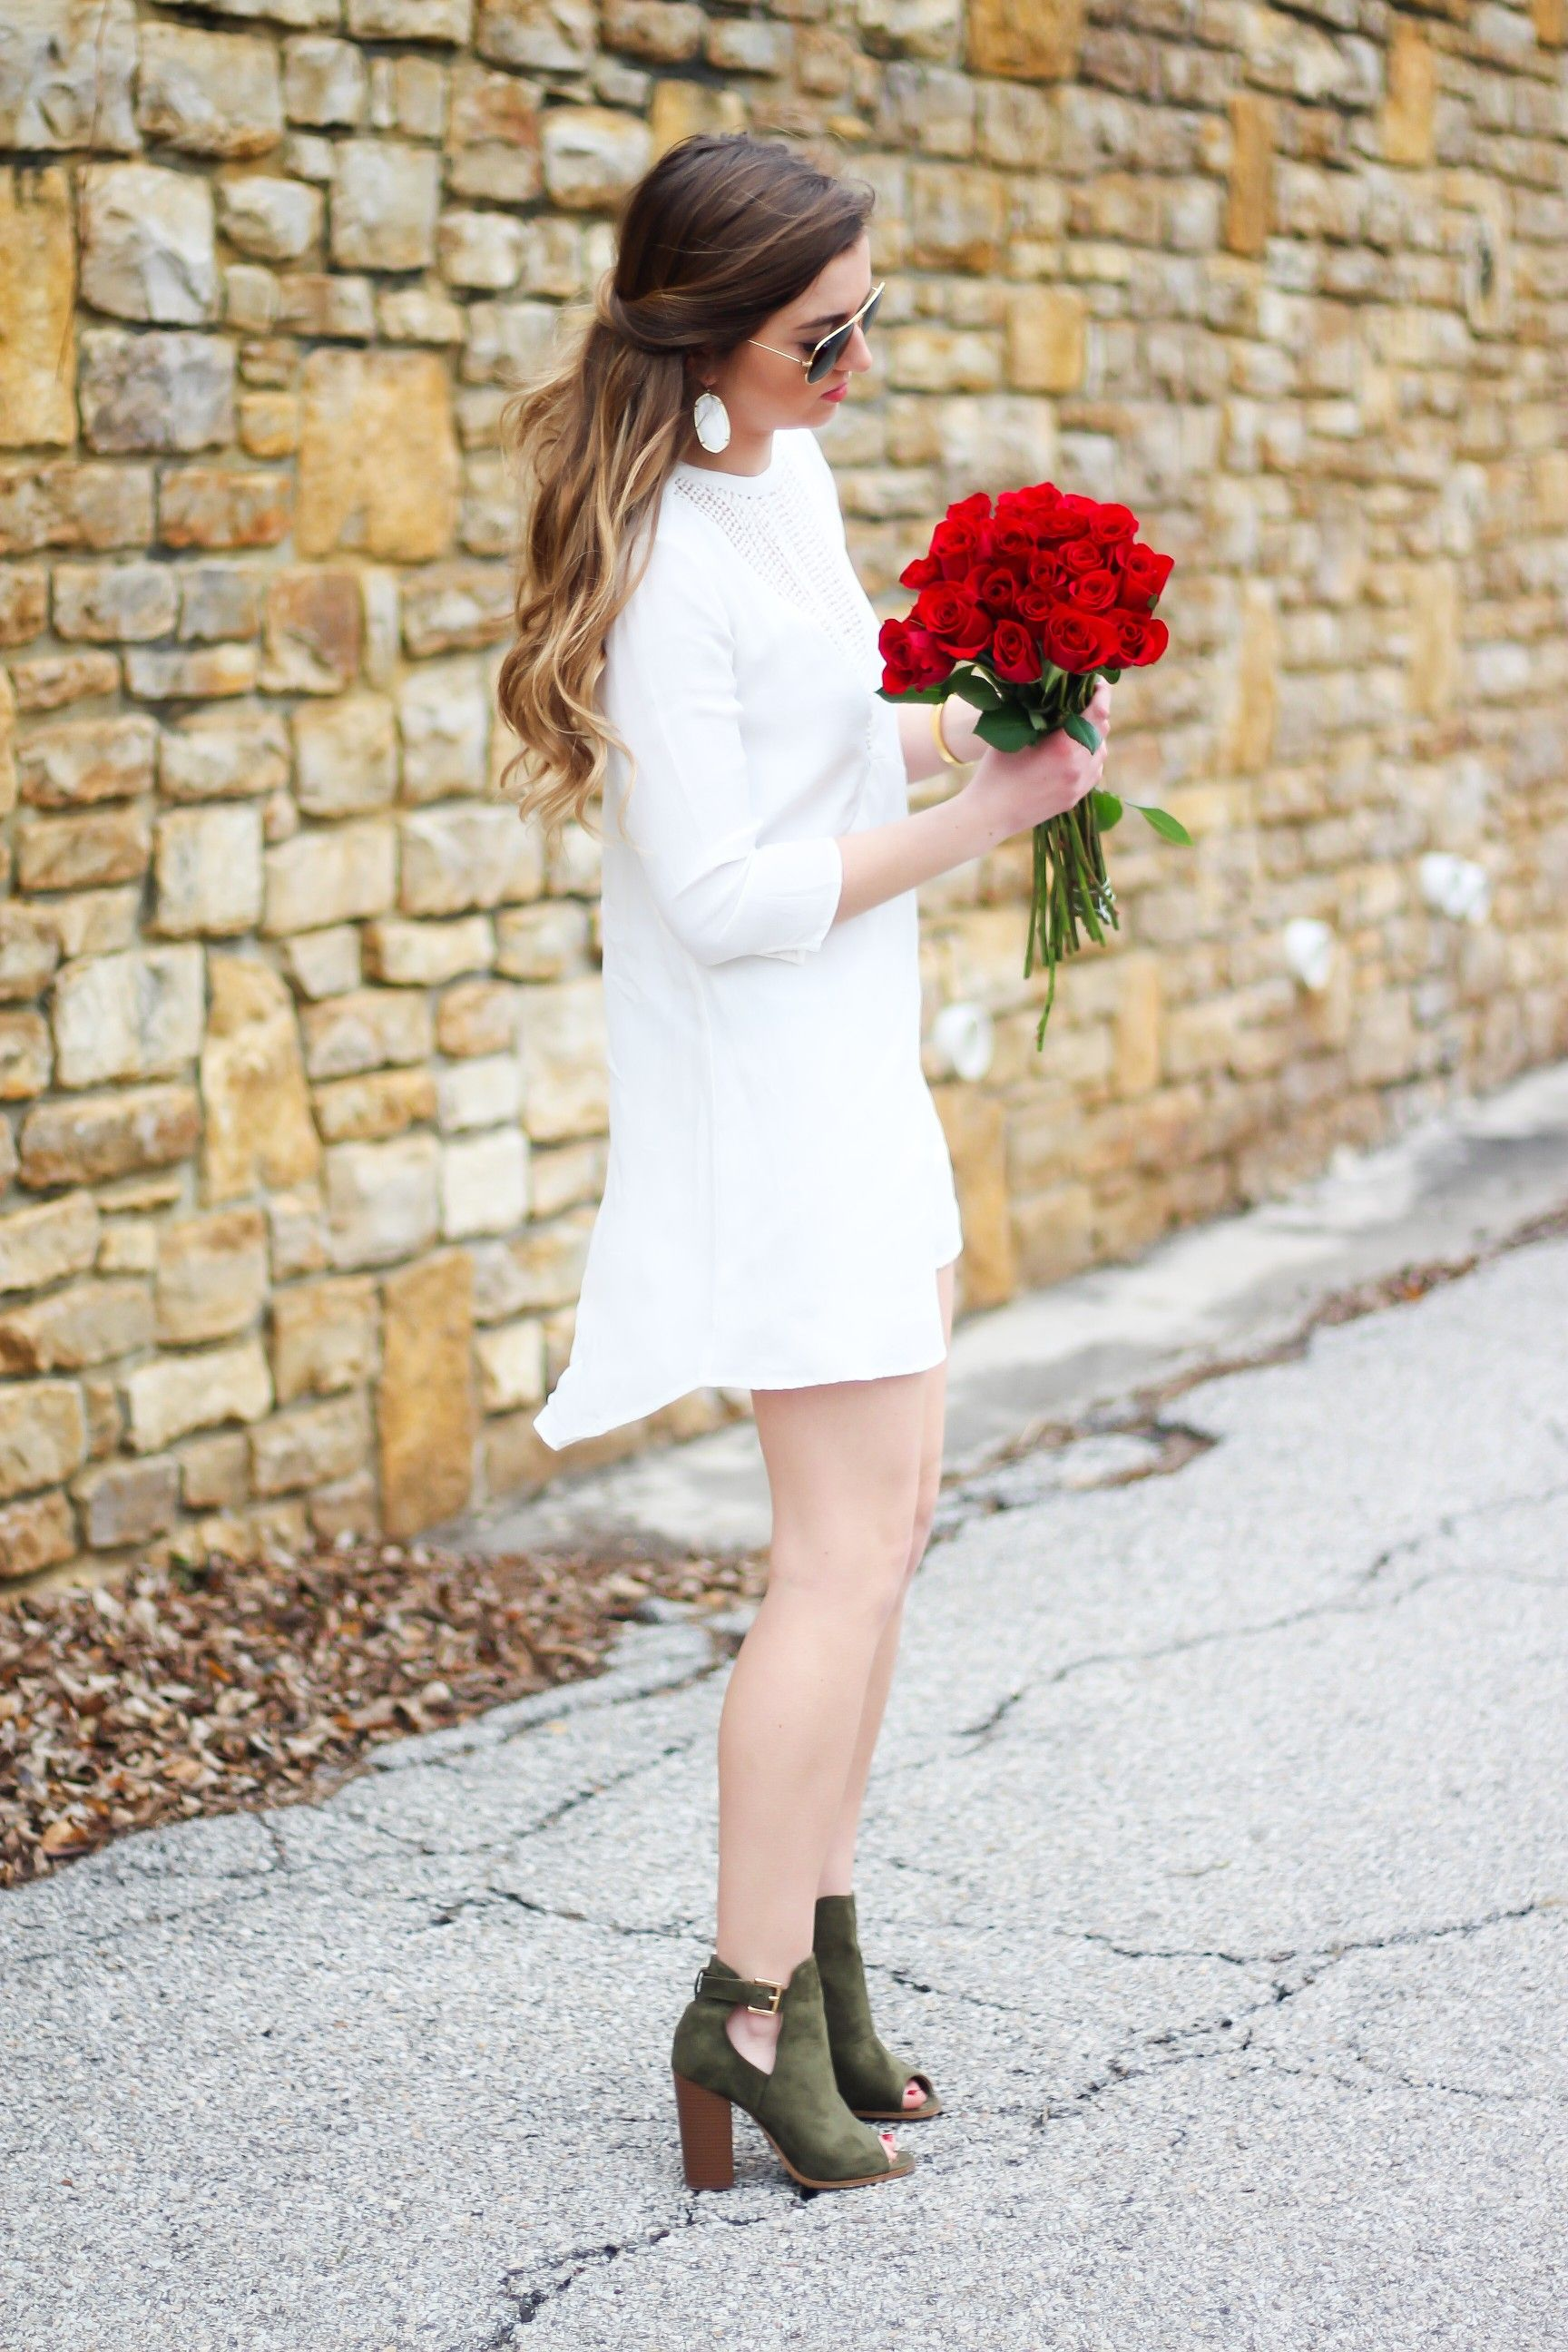 Perfect valentineus day look if you need to know what to wear for